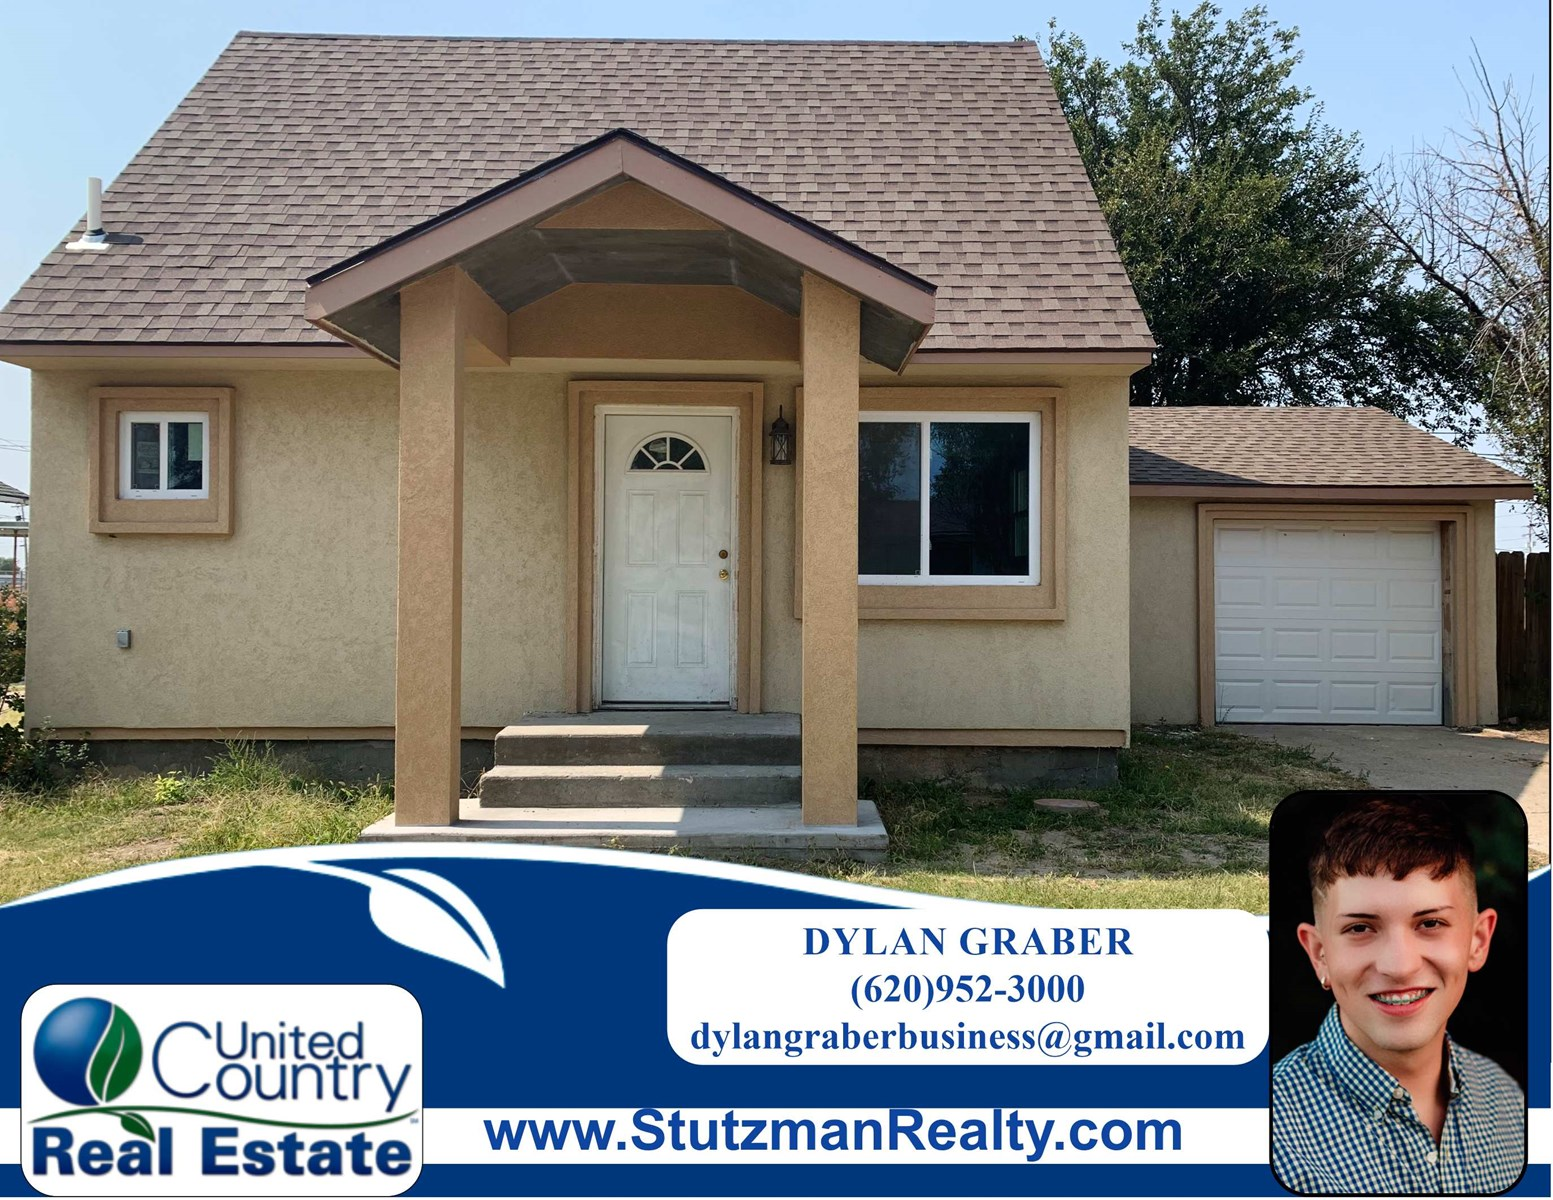 COMPLETELY RENOVATED HOME FOR SALE IN ULYSSES, KS